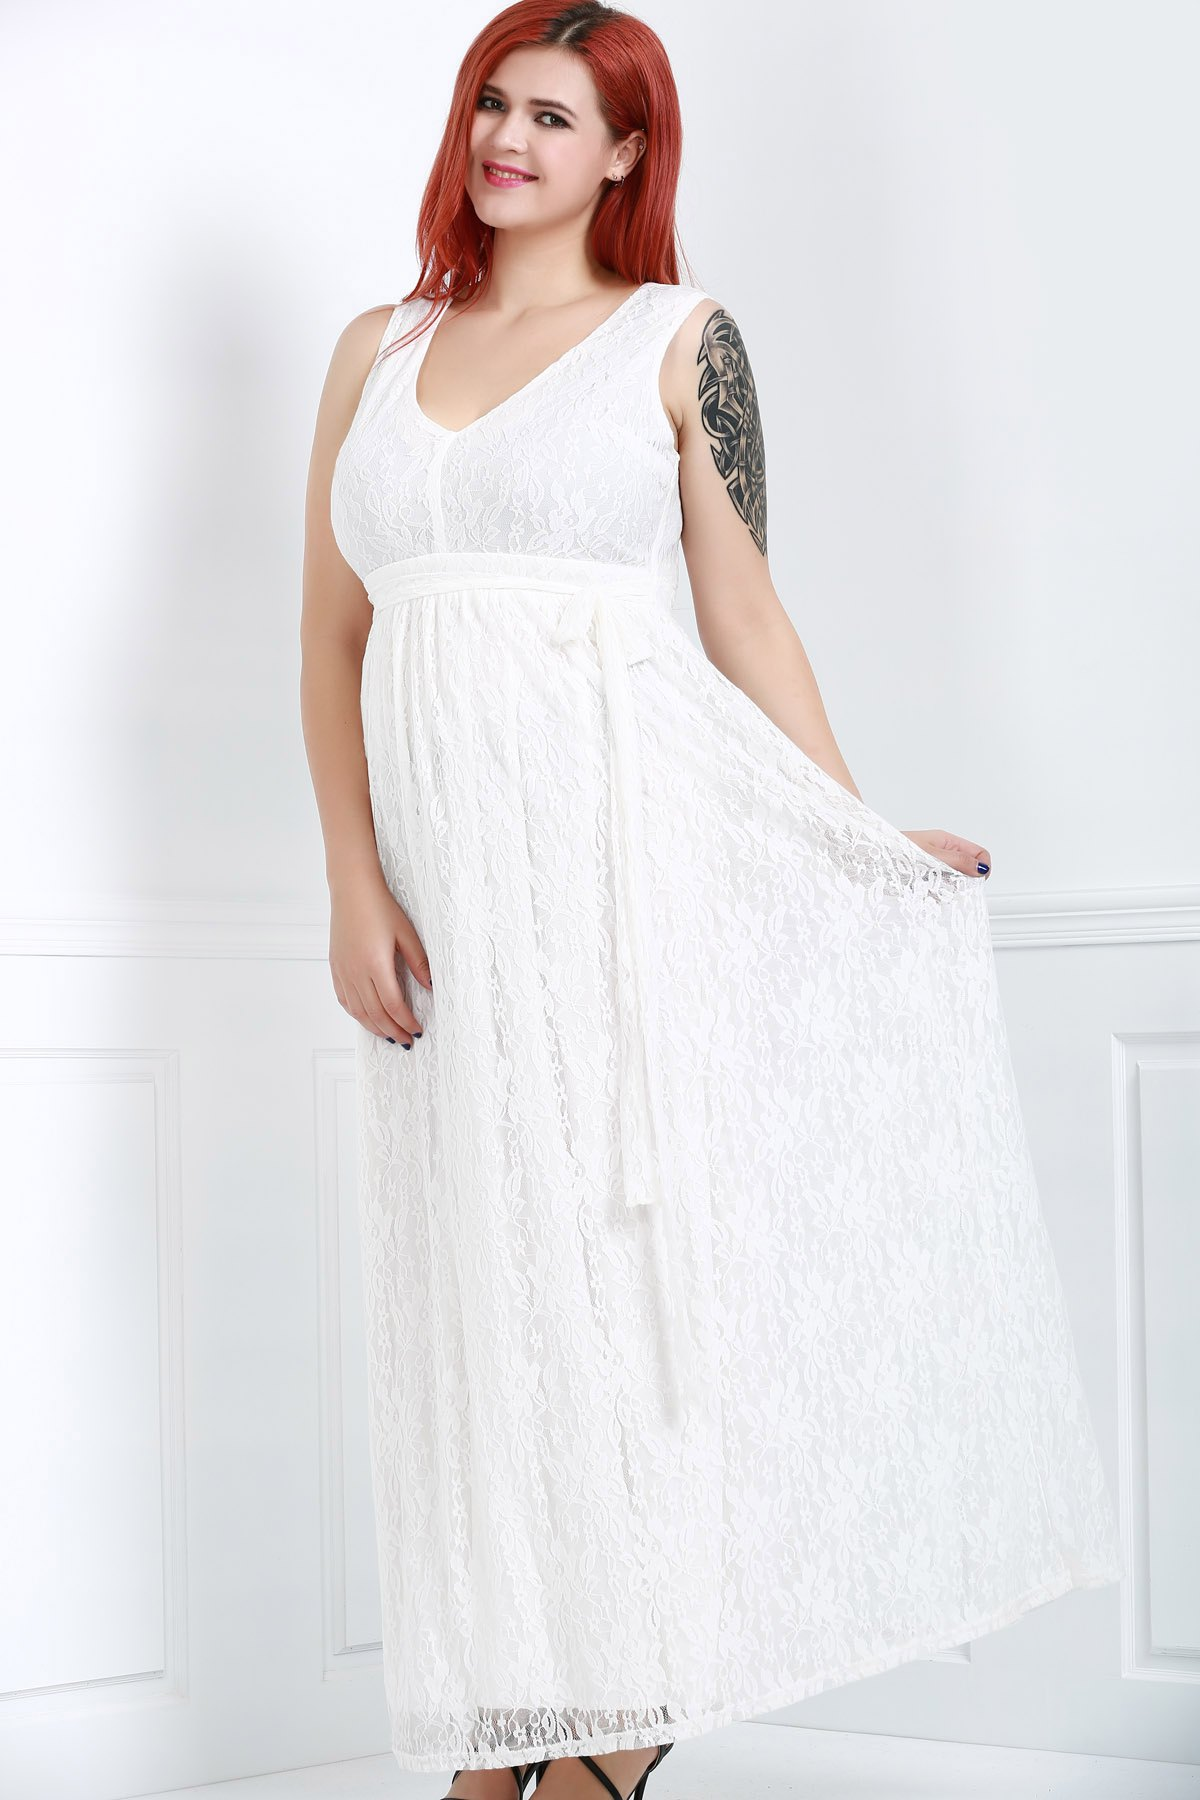 Sleeveless V-Neck Lace Plus Size Princess Dress - WHITE 2XL